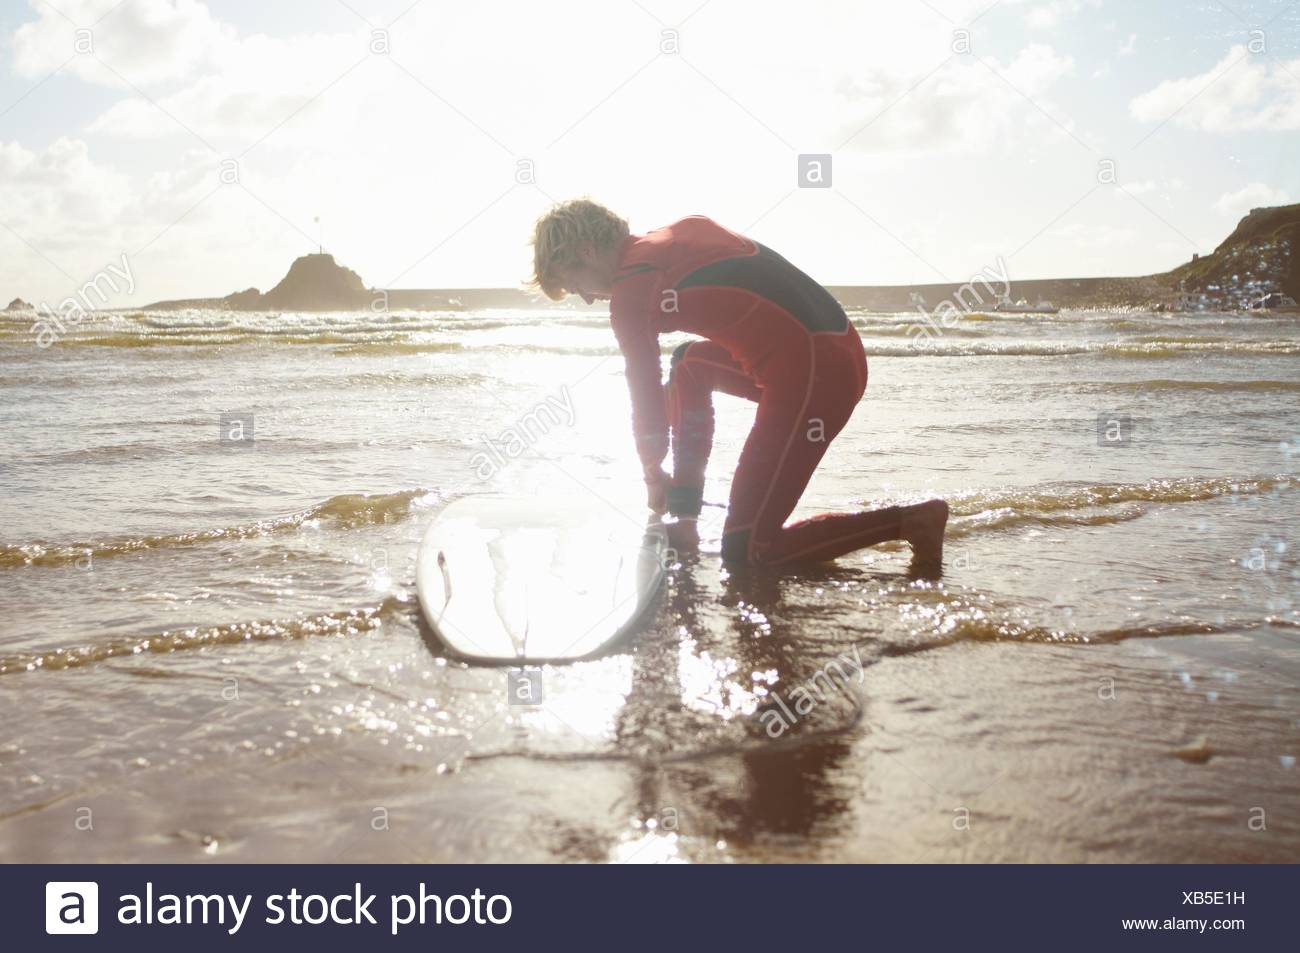 Male surfer untying surfboard from ankle - Stock Image